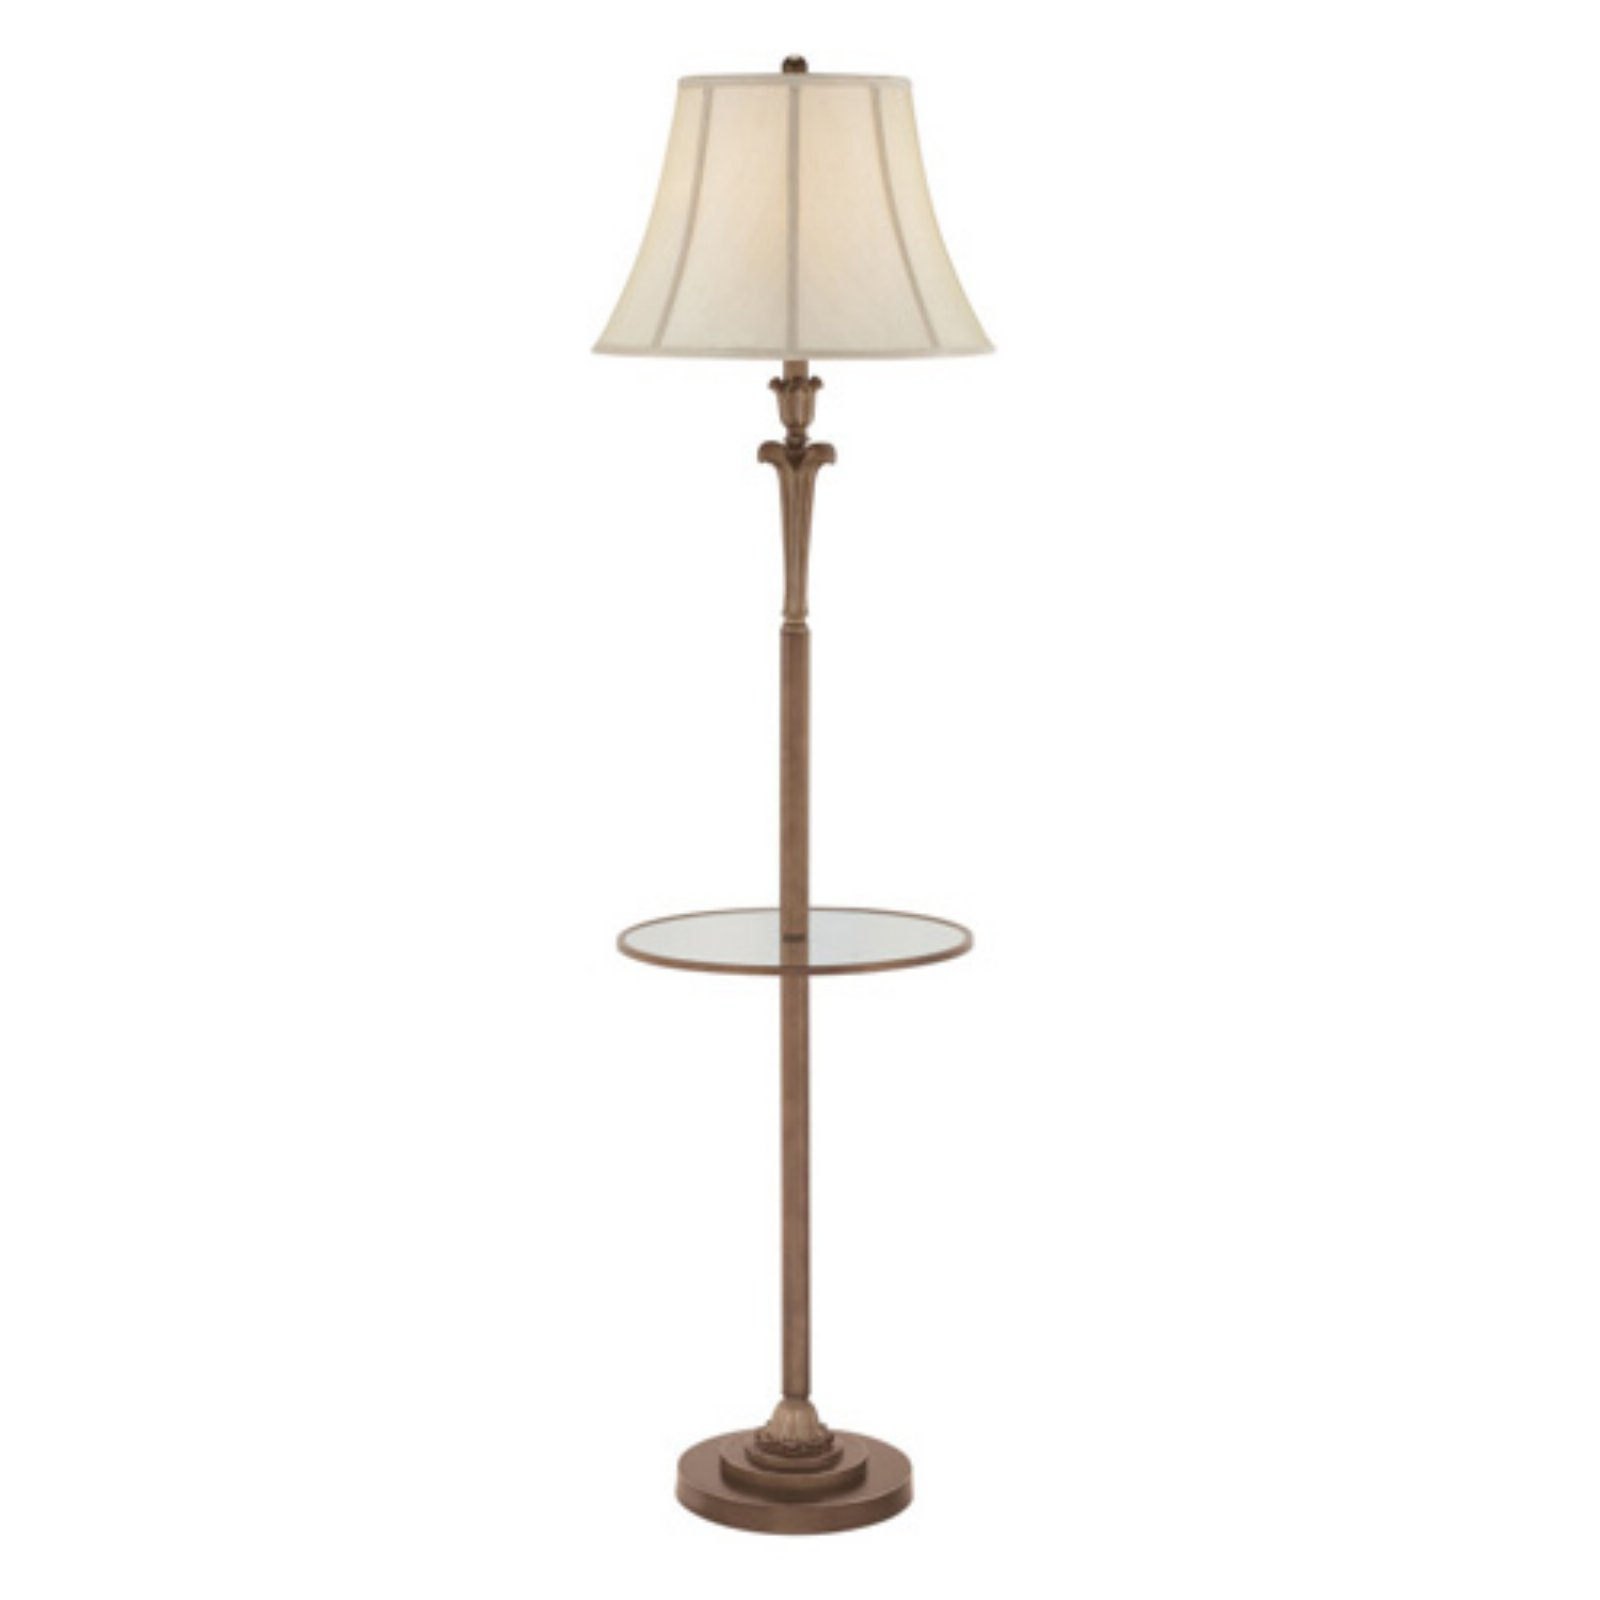 Quoizel Archer Q1073FPN Floor Lamp with Table by Quoizel